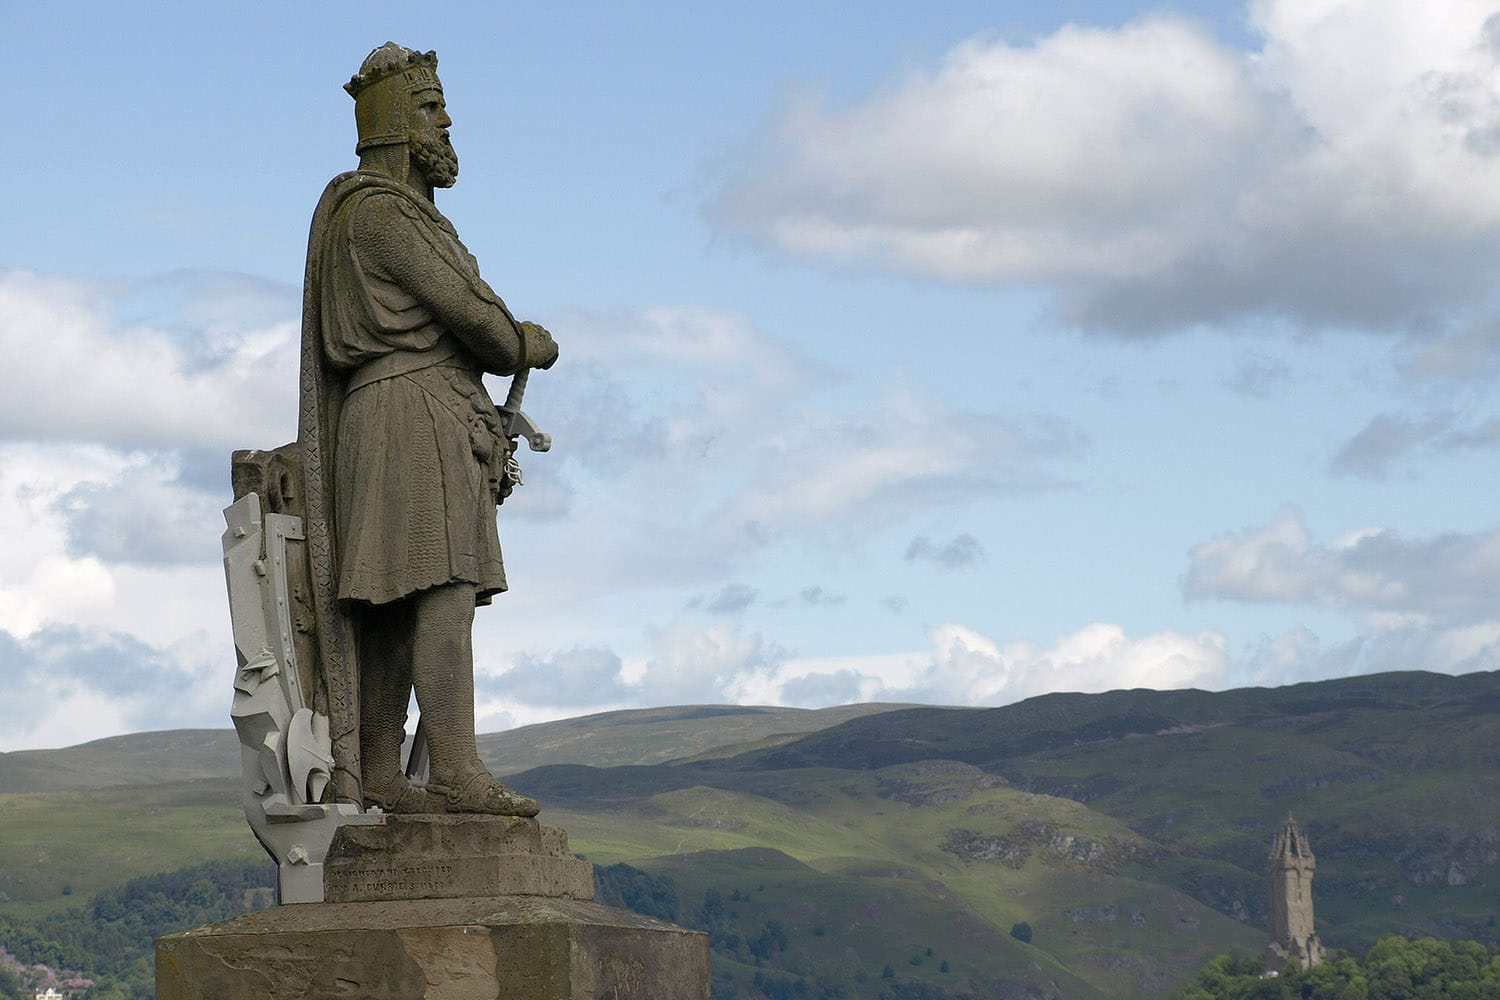 A statue of Robert the Bruce with the Wallace Monument in the background, a highlight of our Outlaw King tour